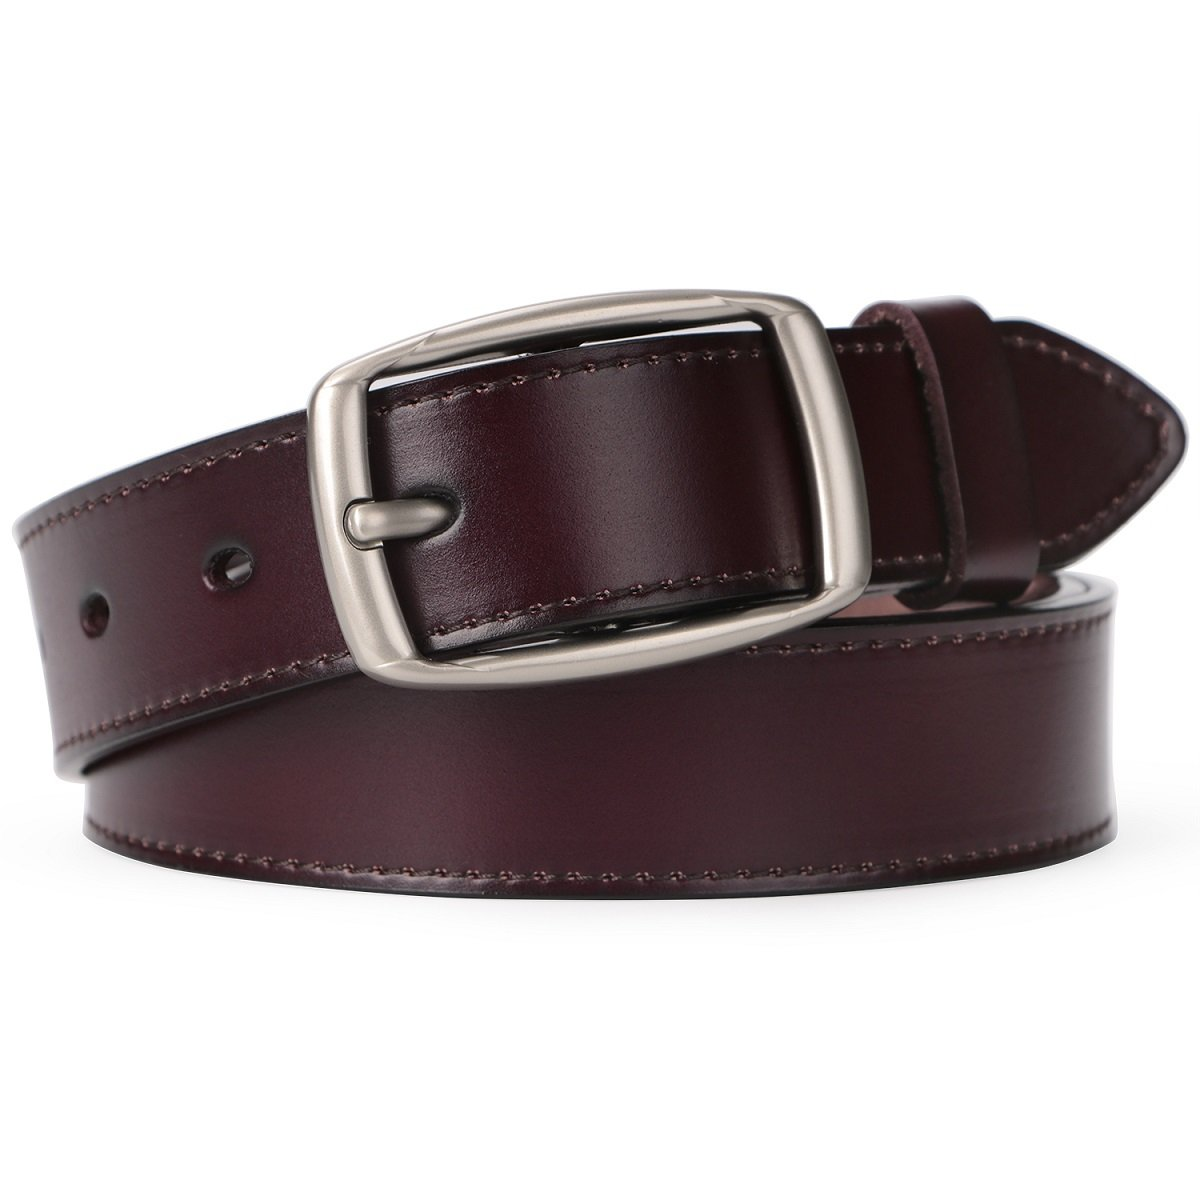 SUOSDEY Genuine Leather Belts for Women with Vintage Metal Buckle